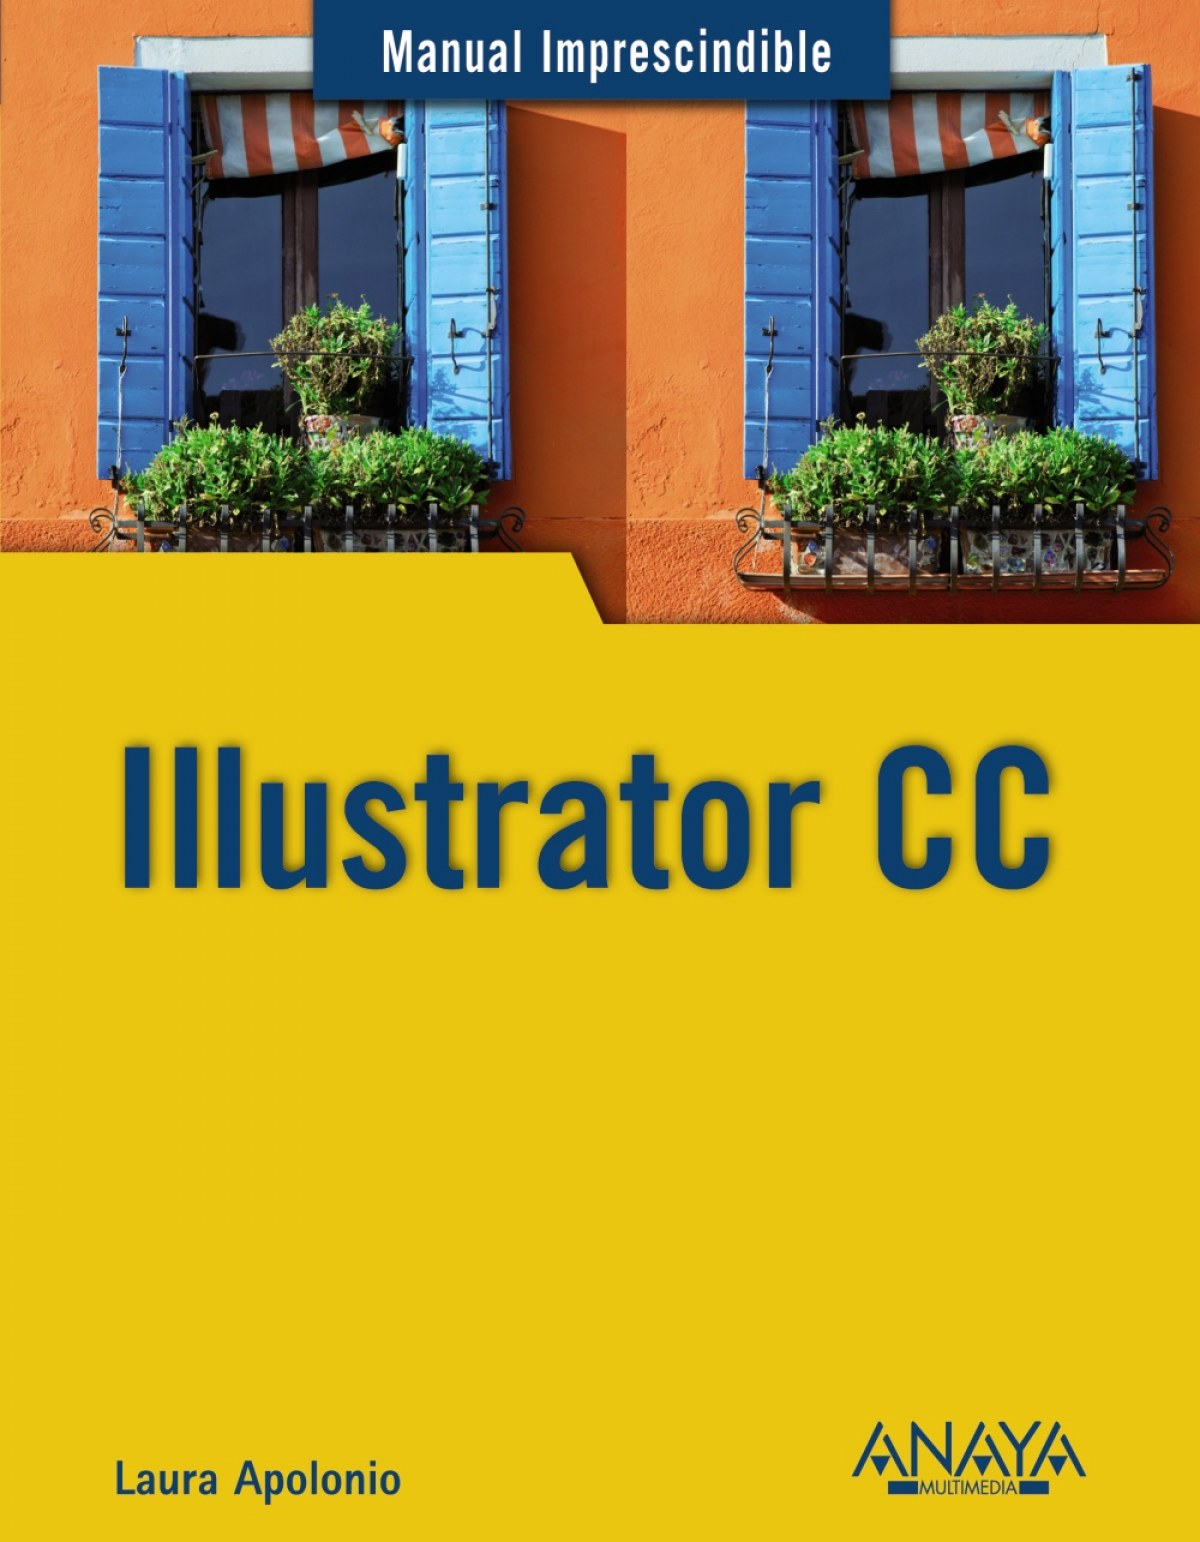 Illustrator CC 9788441535138